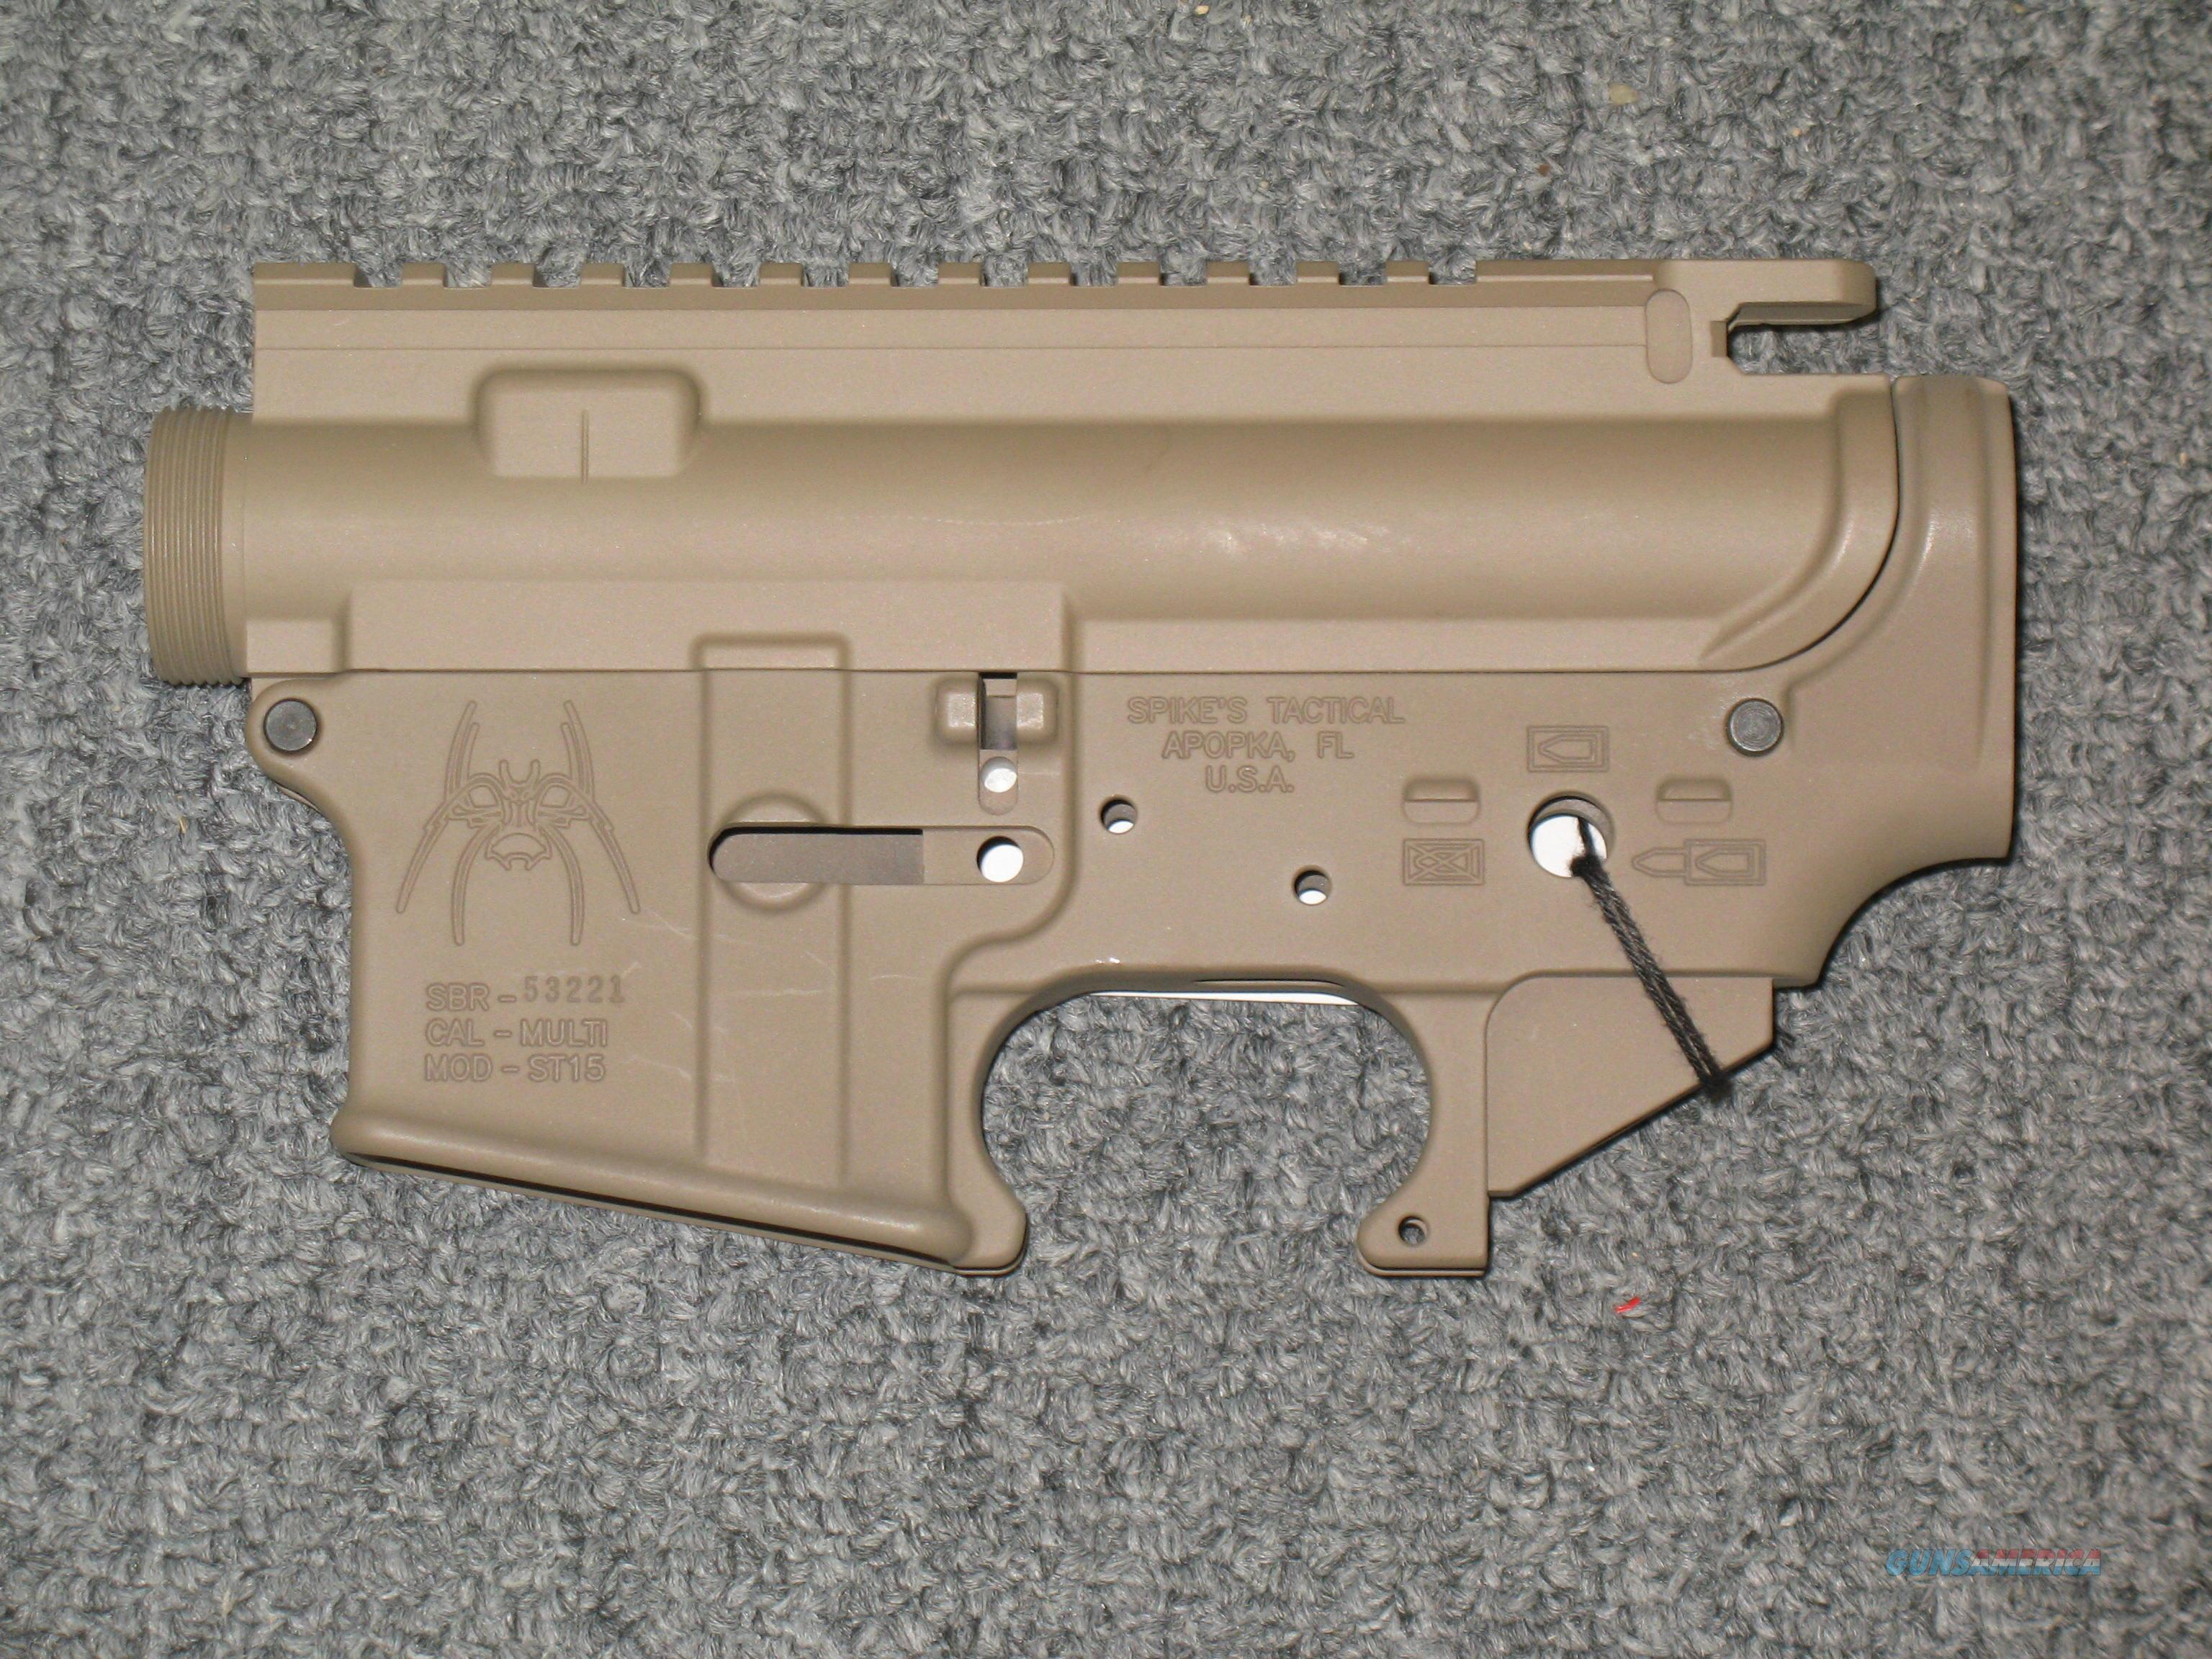 Spikes Tactical ST15 upper & lower FDE Finish  Guns > Rifles > AR-15 Rifles - Small Manufacturers > Lower Only